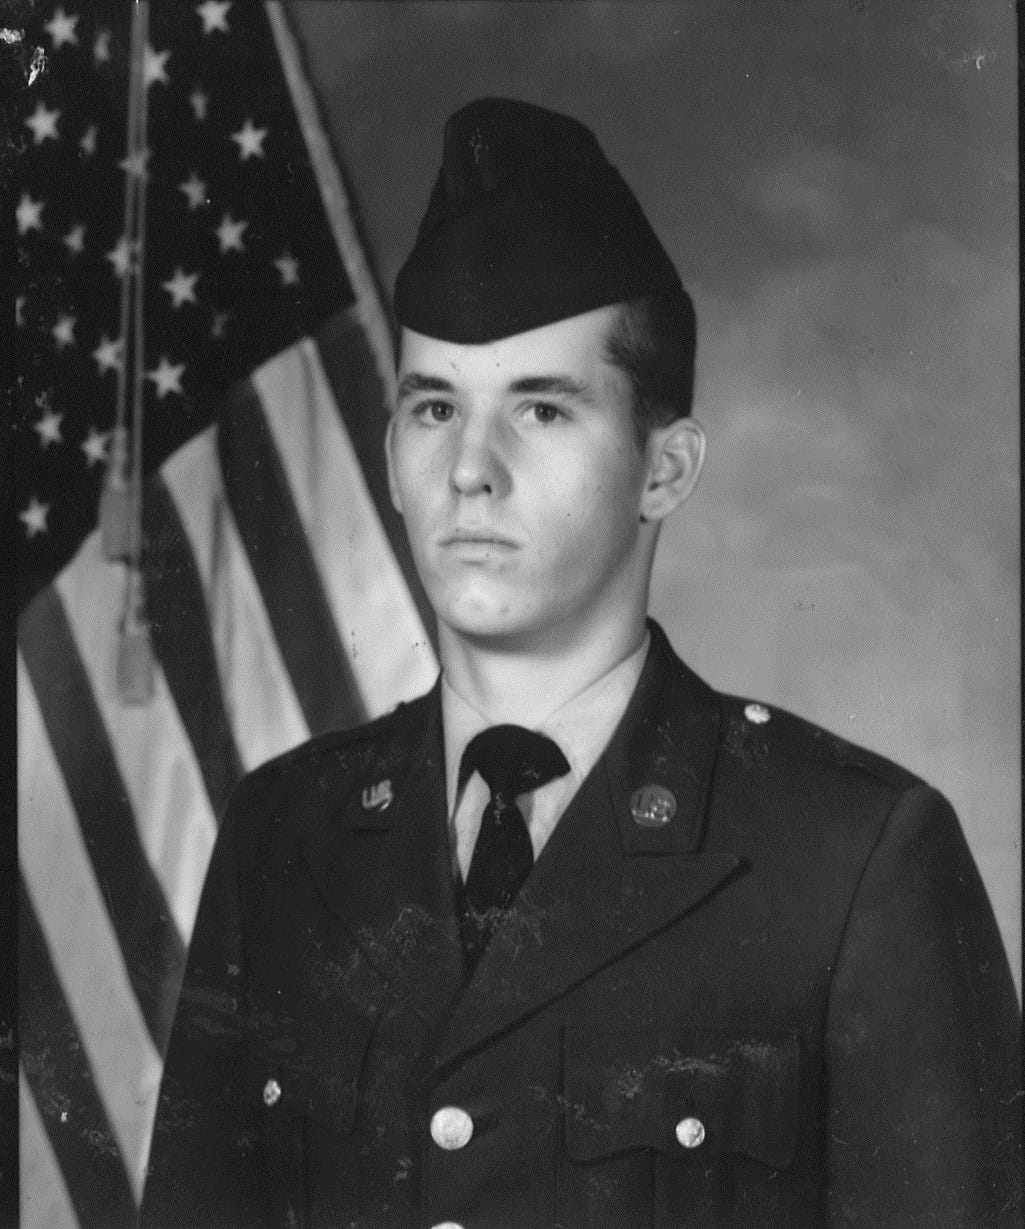 Halverson, photographed during boot camp at Fort Jackson, South Carolina, was 17 when he joined the Army.